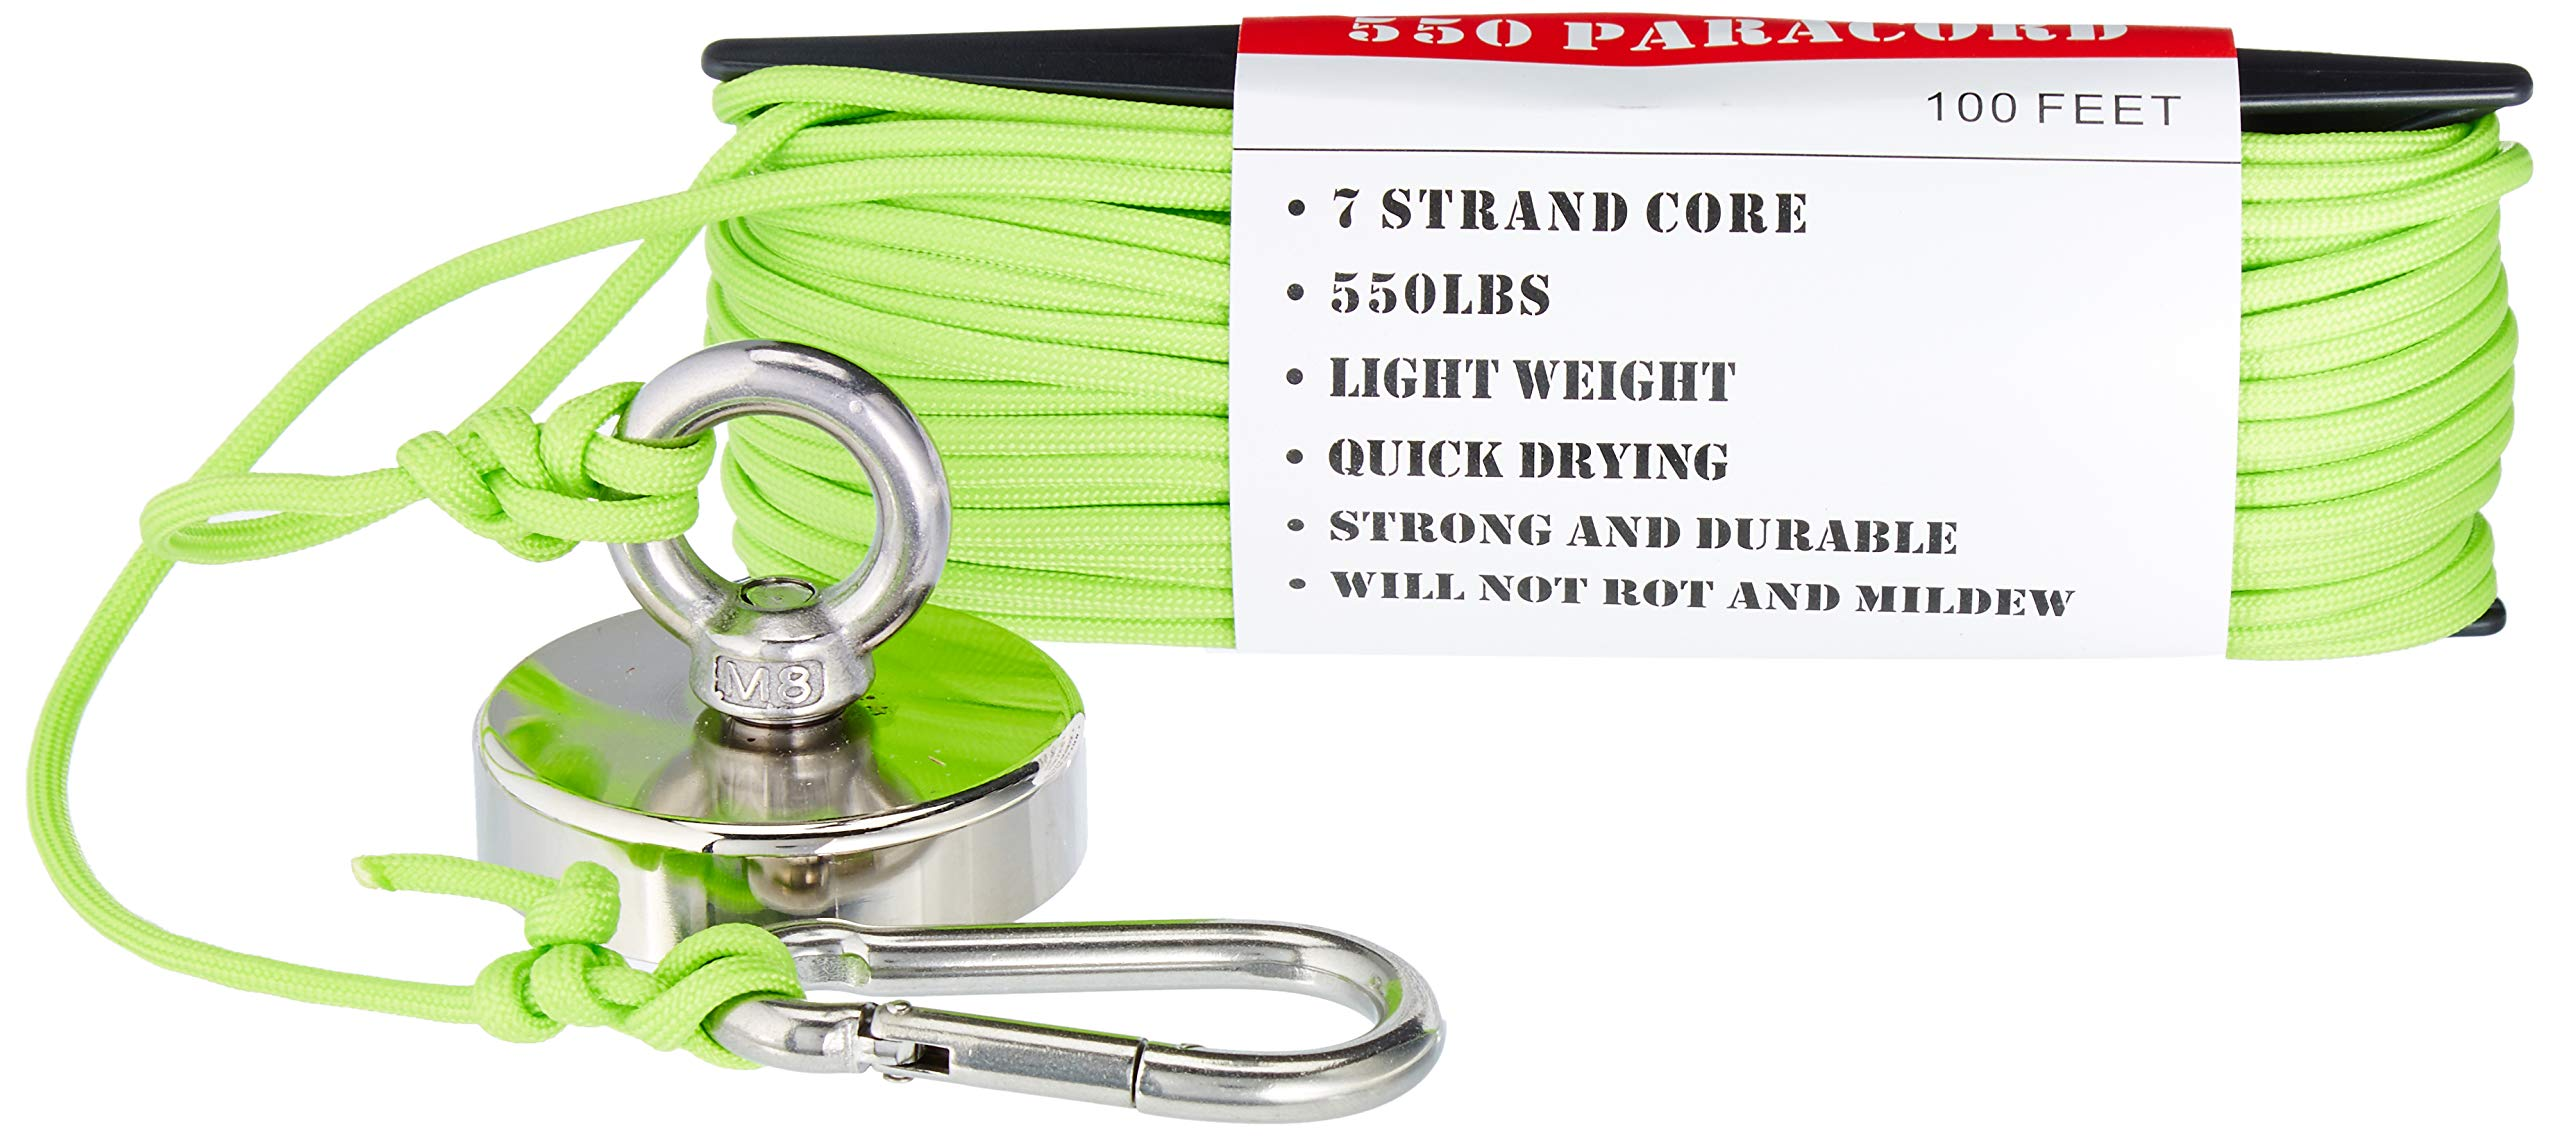 Magnet Fishing Kit ''The Green Grabber'' Super Strong Neodymium Magnet 325 lbs Force with Locked Eyebolt Threads 100 ft of 550 Paracord and Snap Clip for Safe Attachment